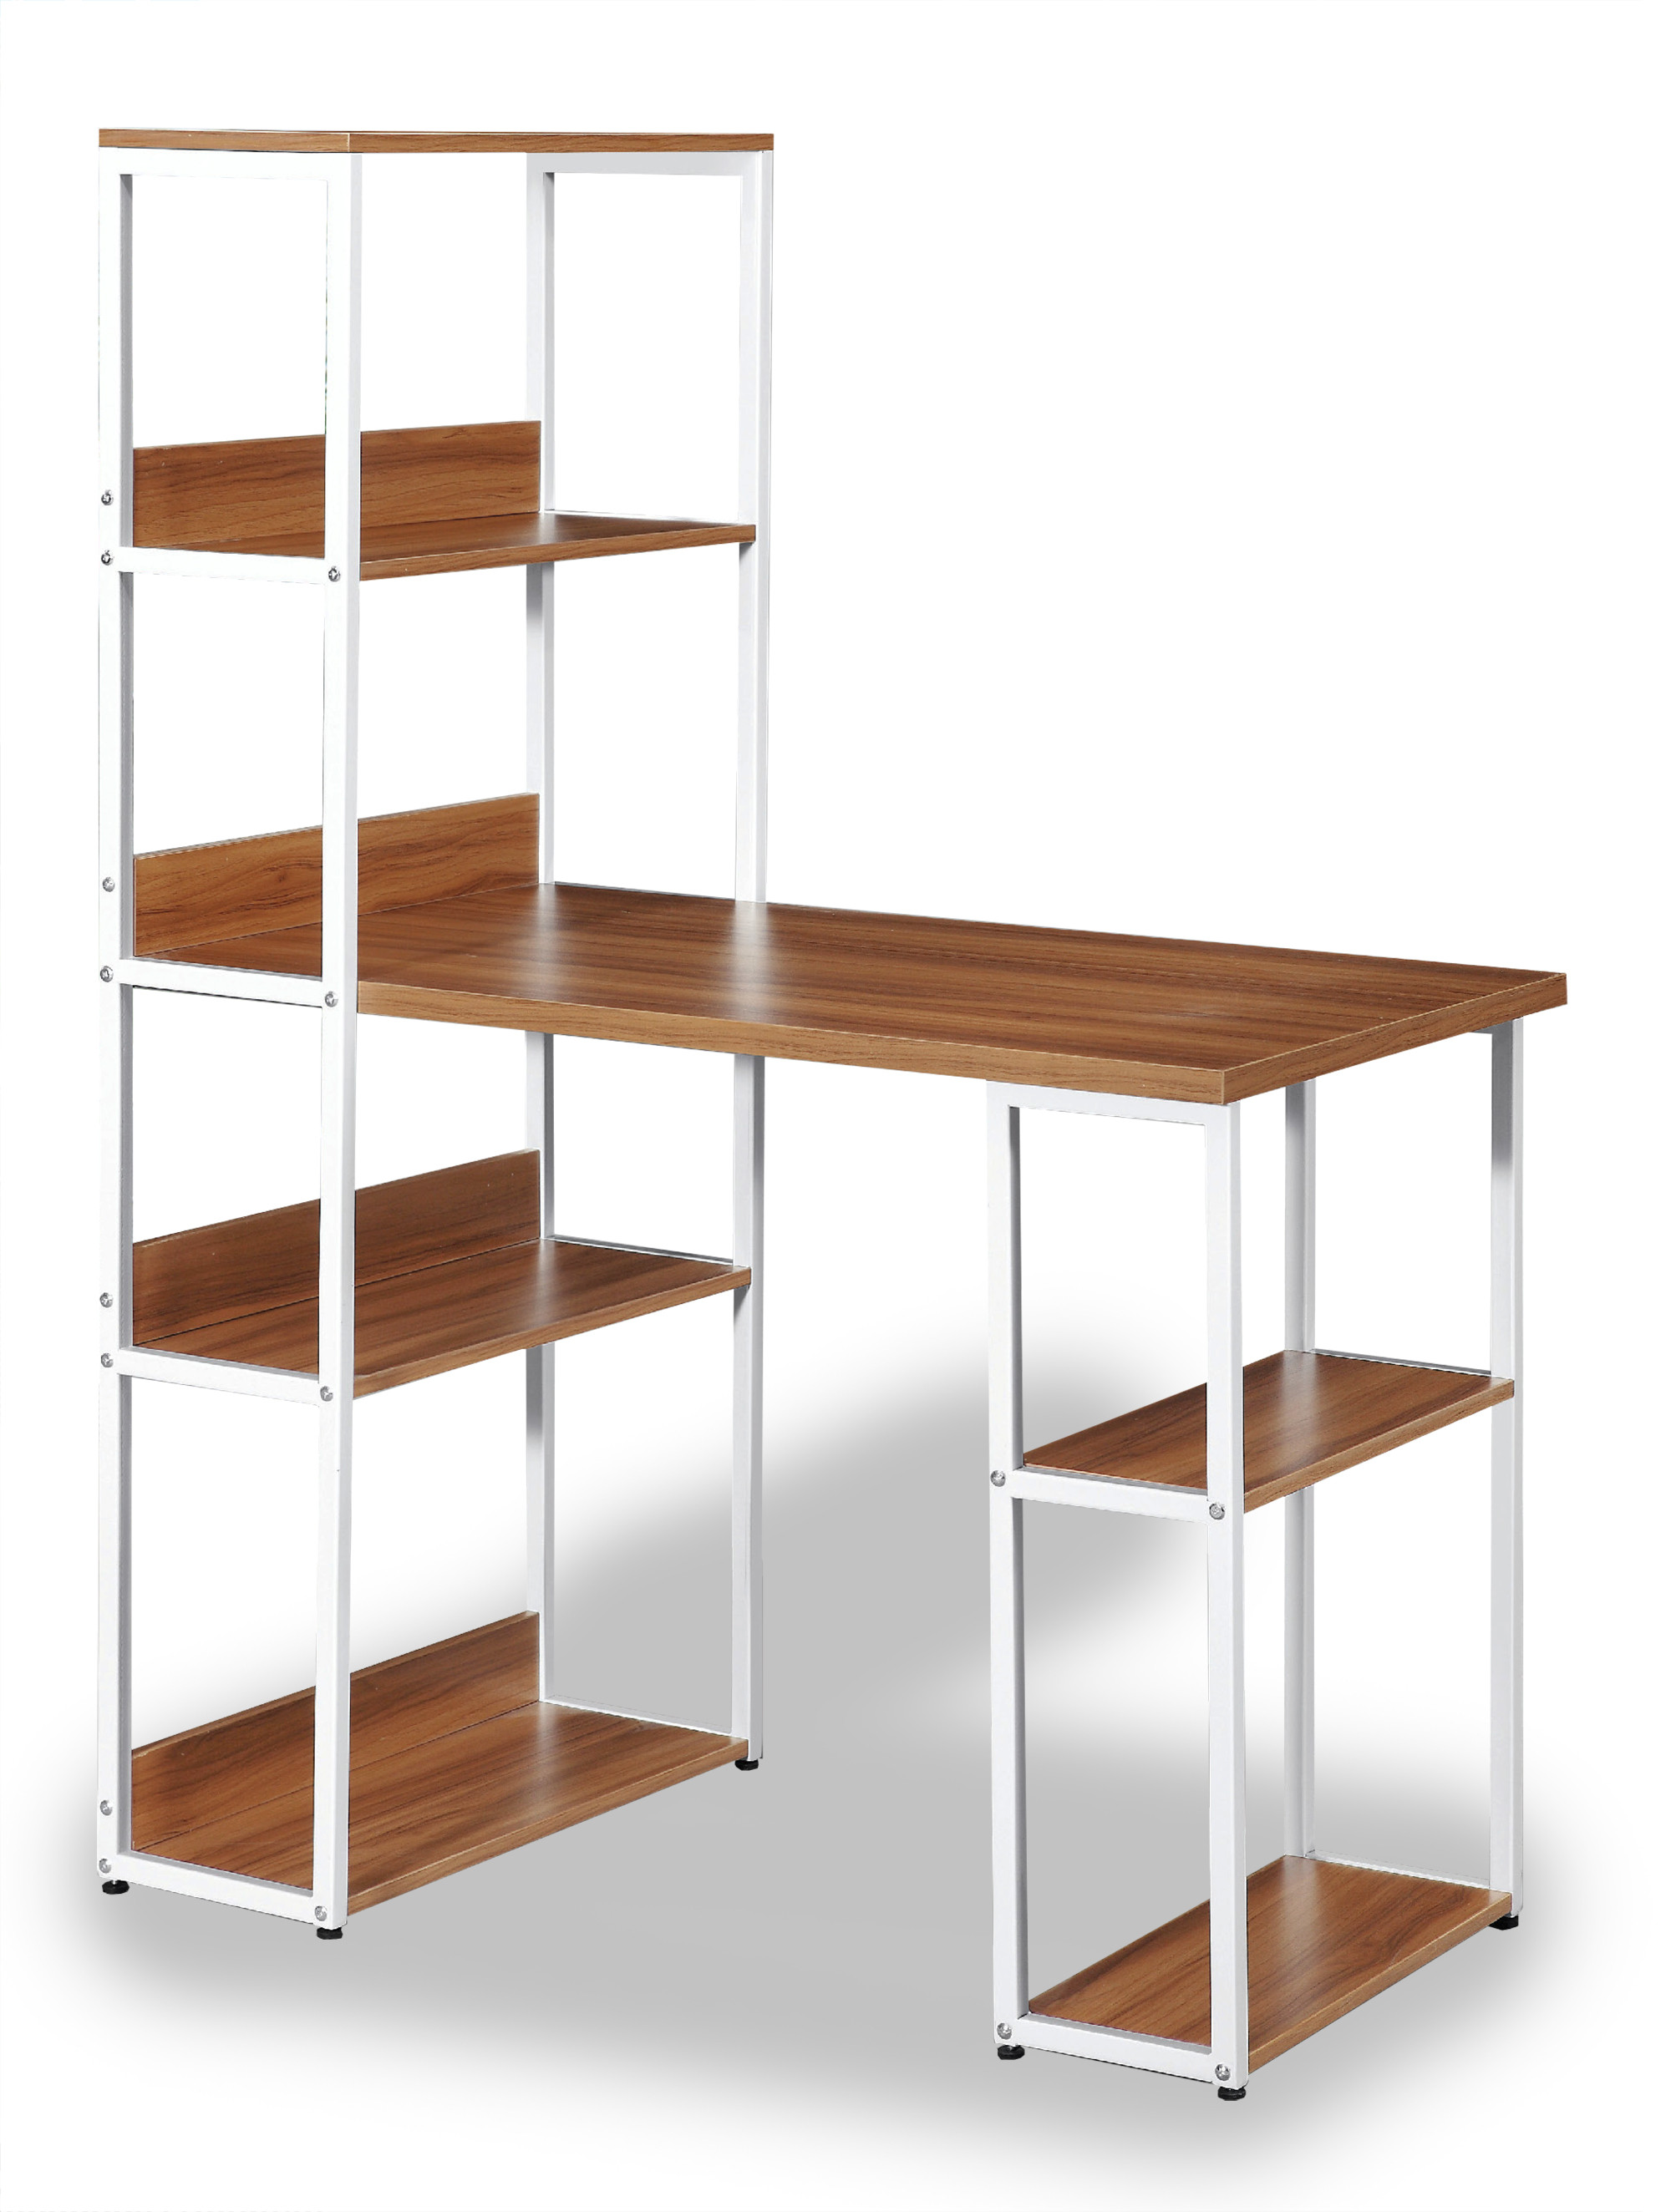 Remarkable Owain Study Table With Storage Shelves Interior Design Ideas Tzicisoteloinfo